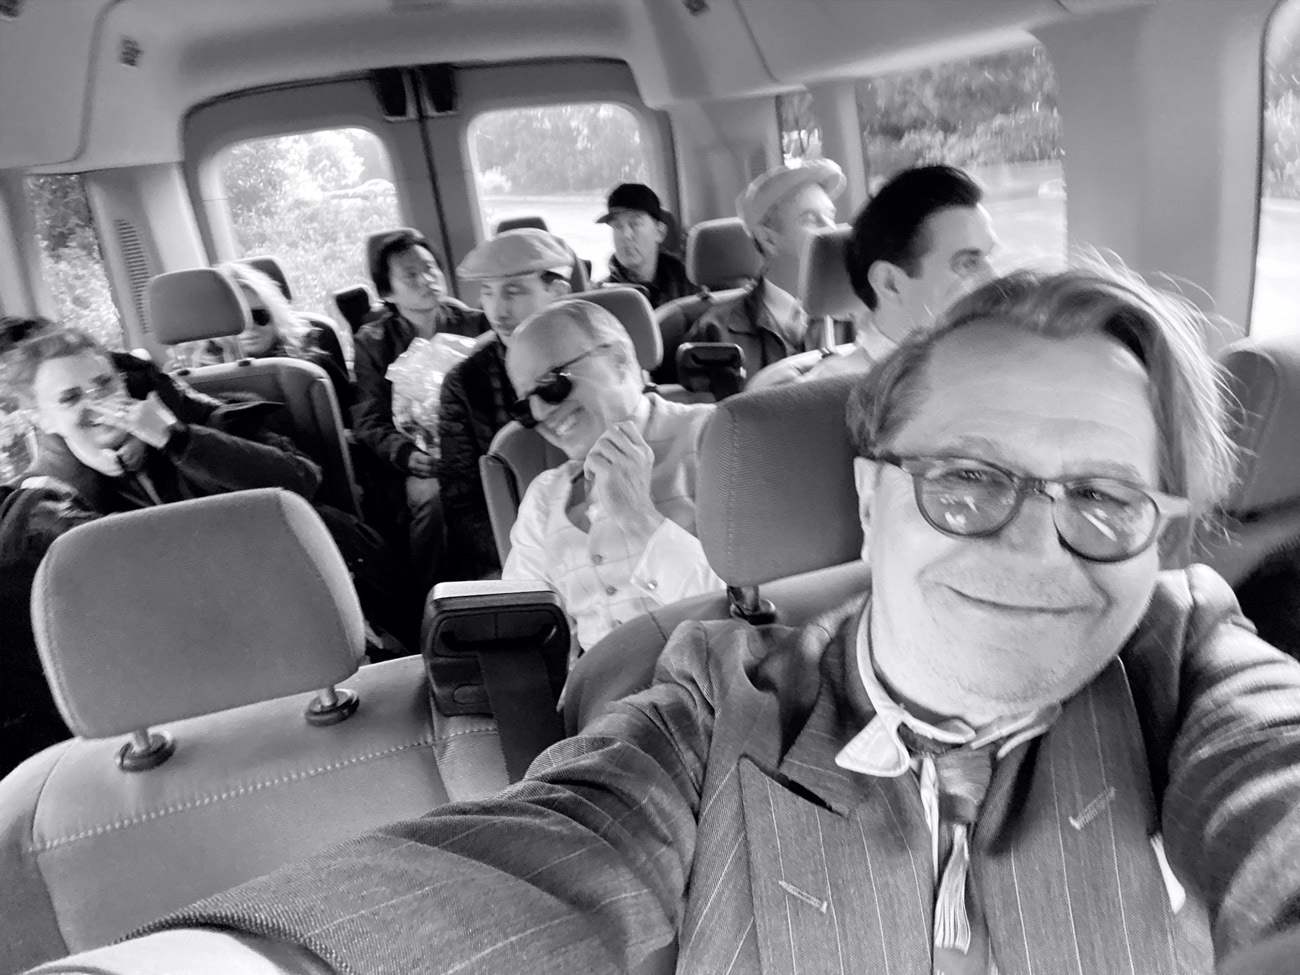 Oldman takes a smiling selfie in a van, with cast and crew enjoying themselves in the background.